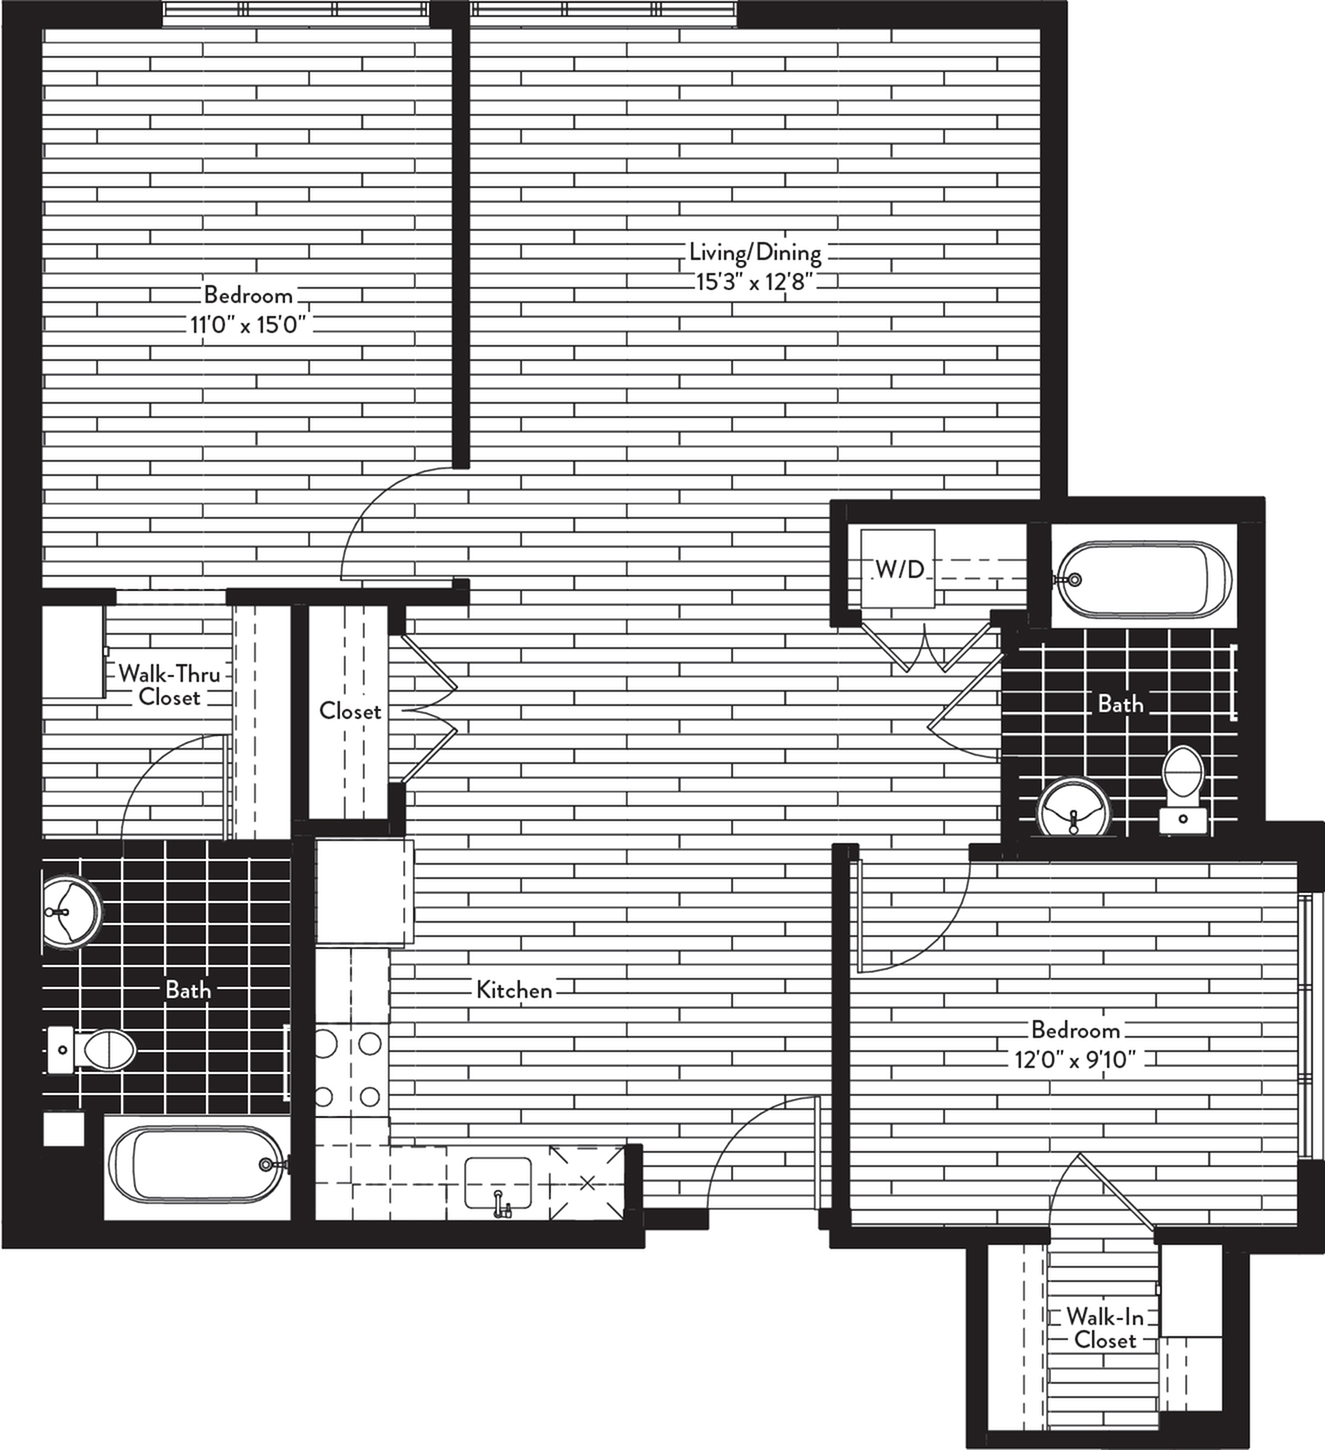 1069 square foot two bedroom two bath floor plan image